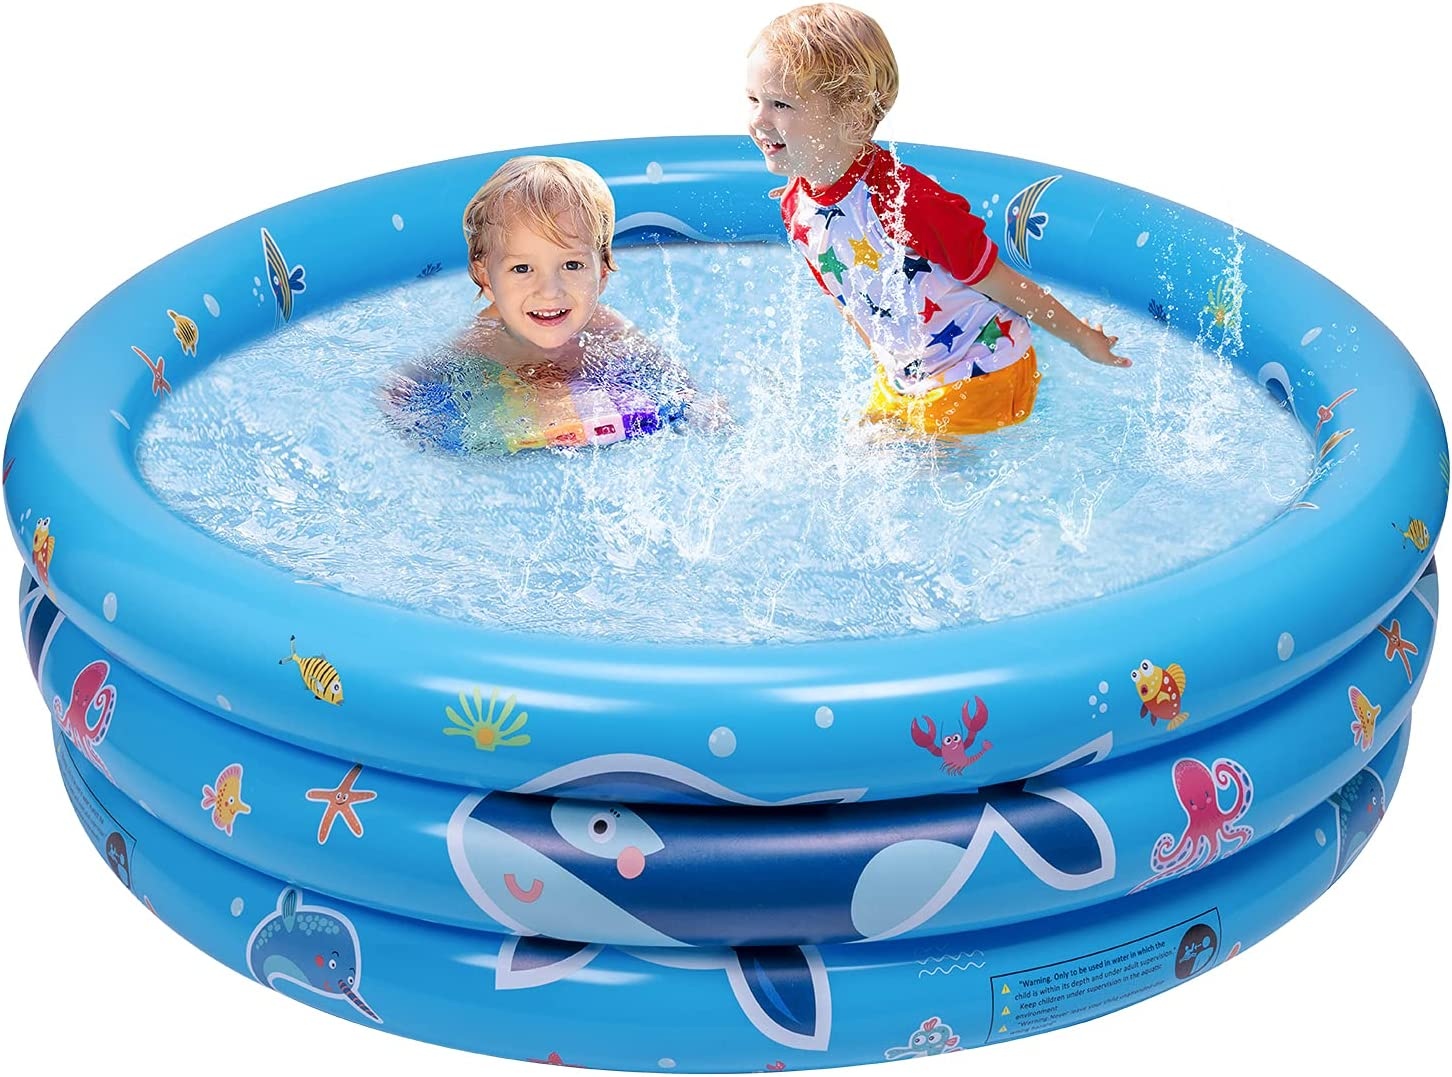 balnore Inflatable Kiddie Pool, 3 Ring Kids Paddling Whale Pool, Baby, Toddlers for Ages 3+, Kiddie, Indoor&Outdoor, Garden and Backyard Water Party, 48x18x8 in: Toys & Games